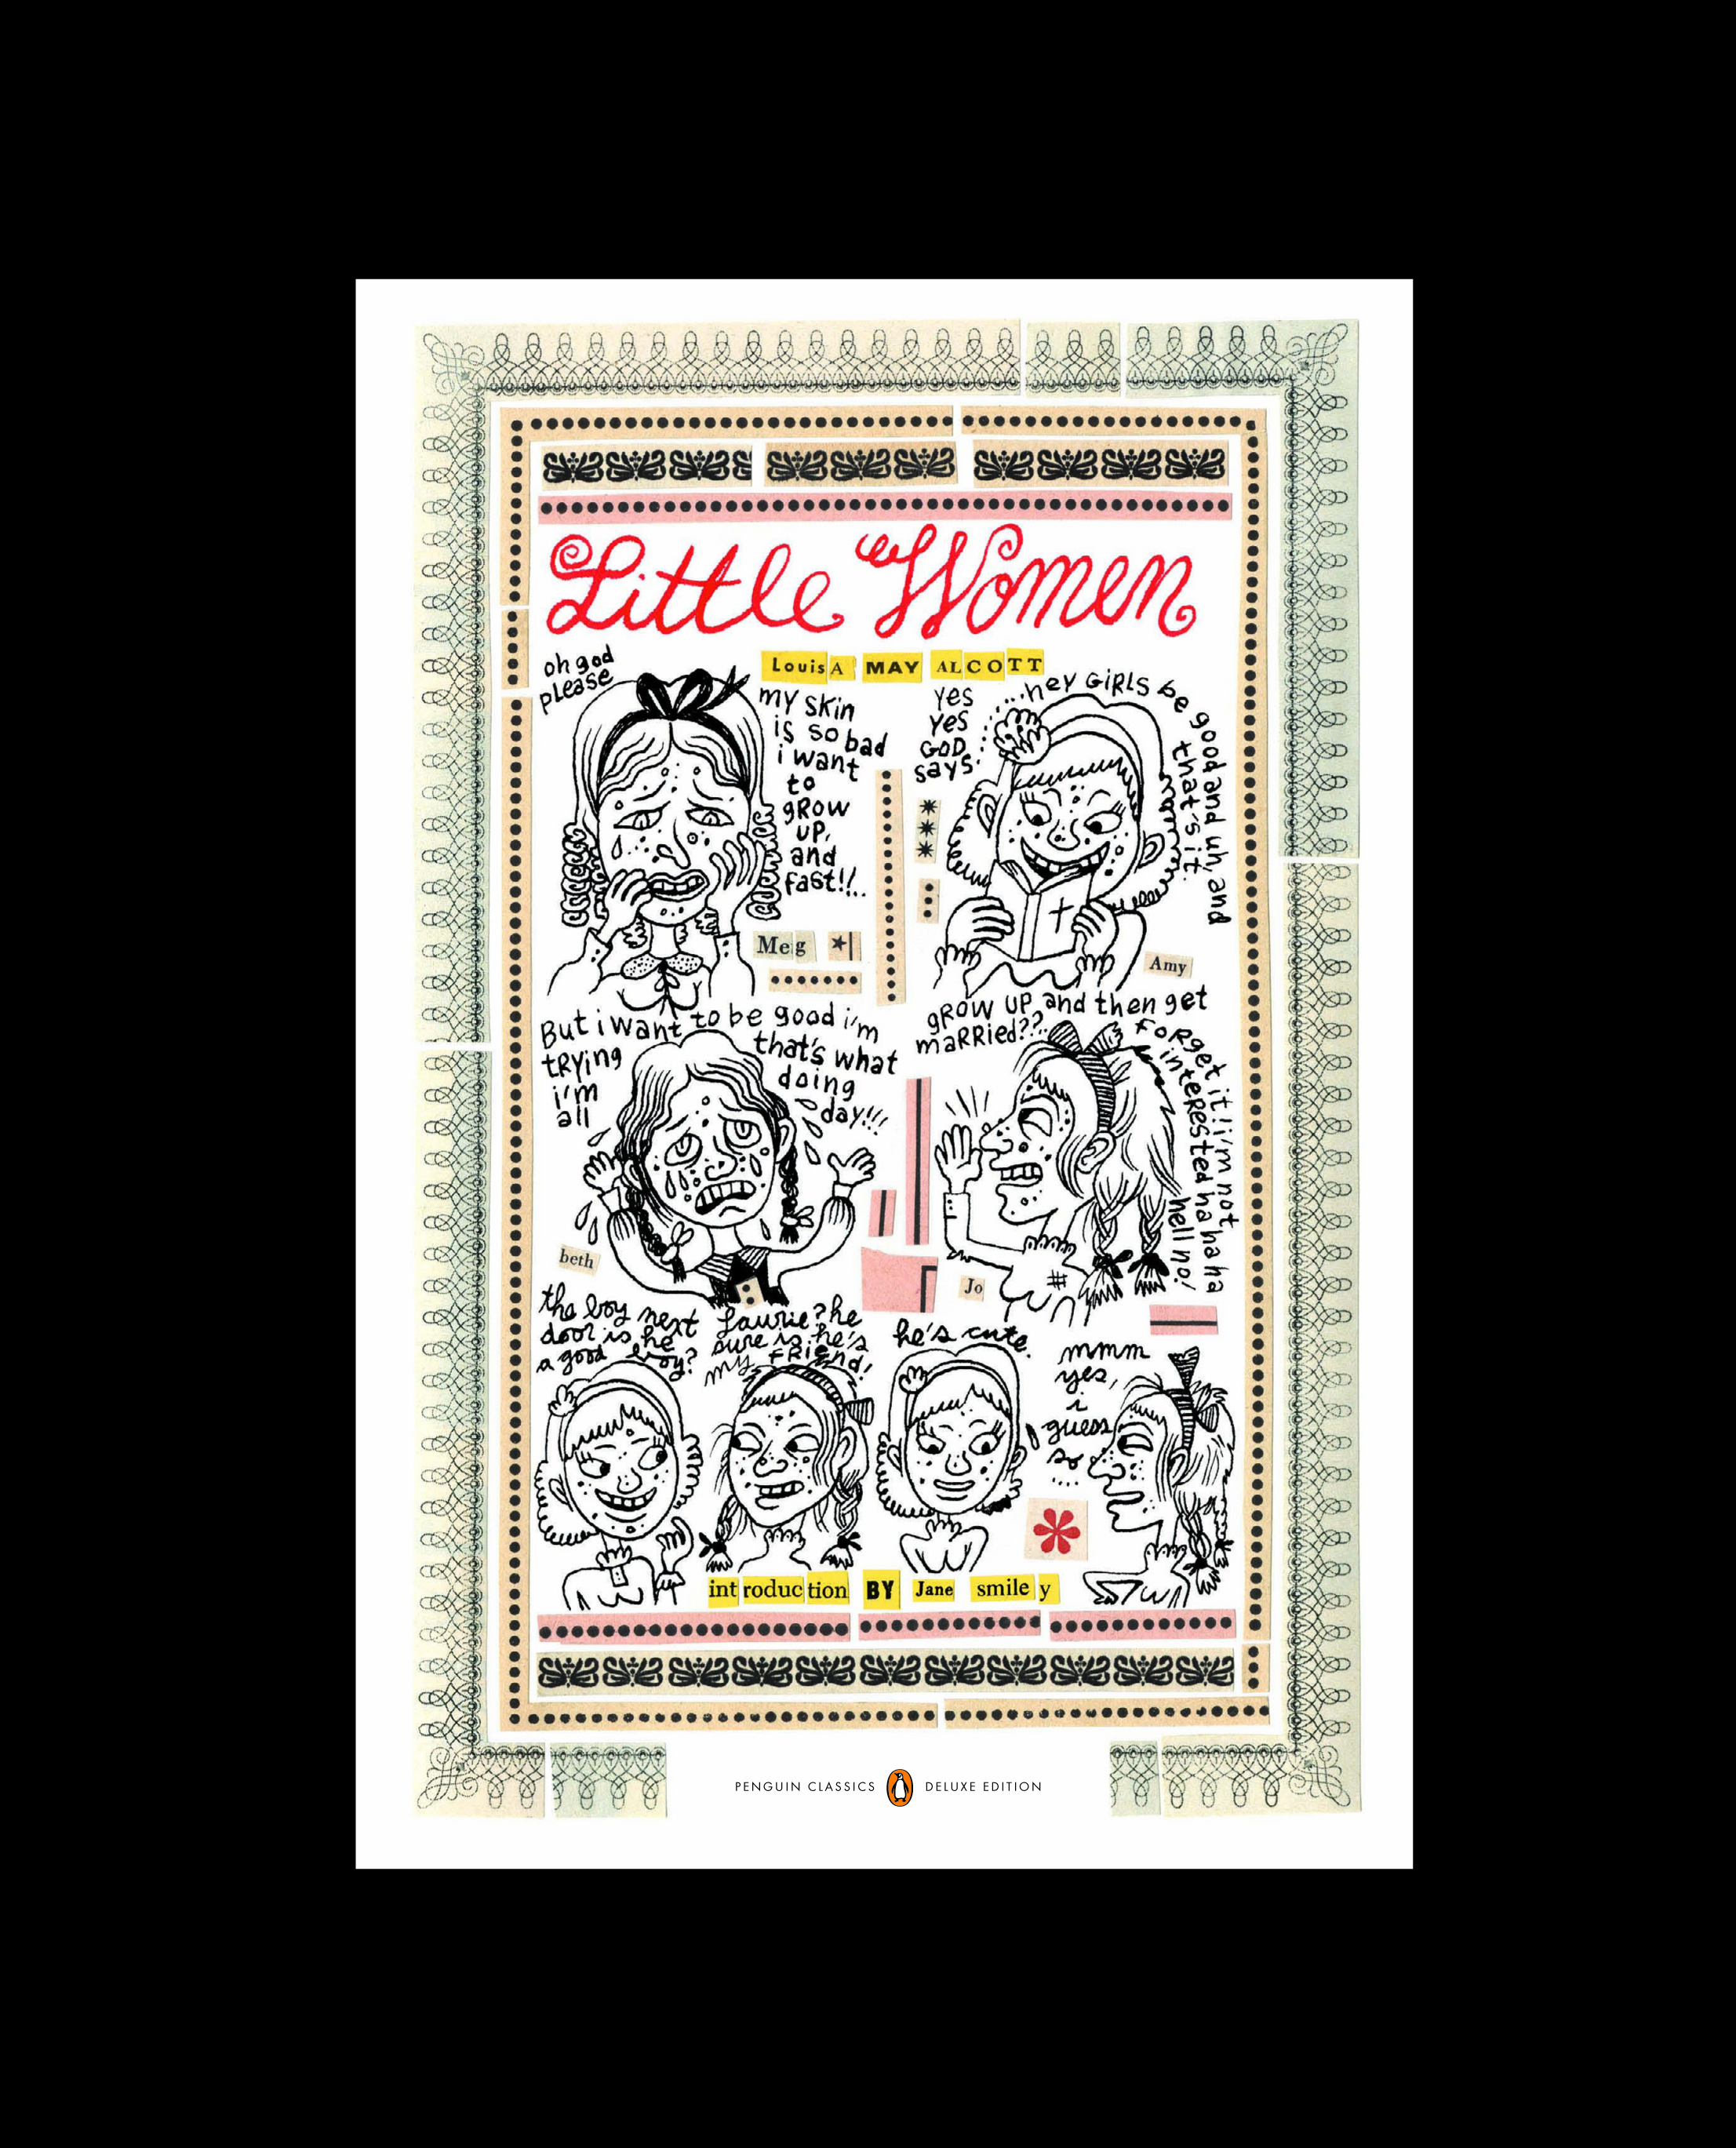 Little Women Book Cover Penguin : Penguin designers authors commentary the good